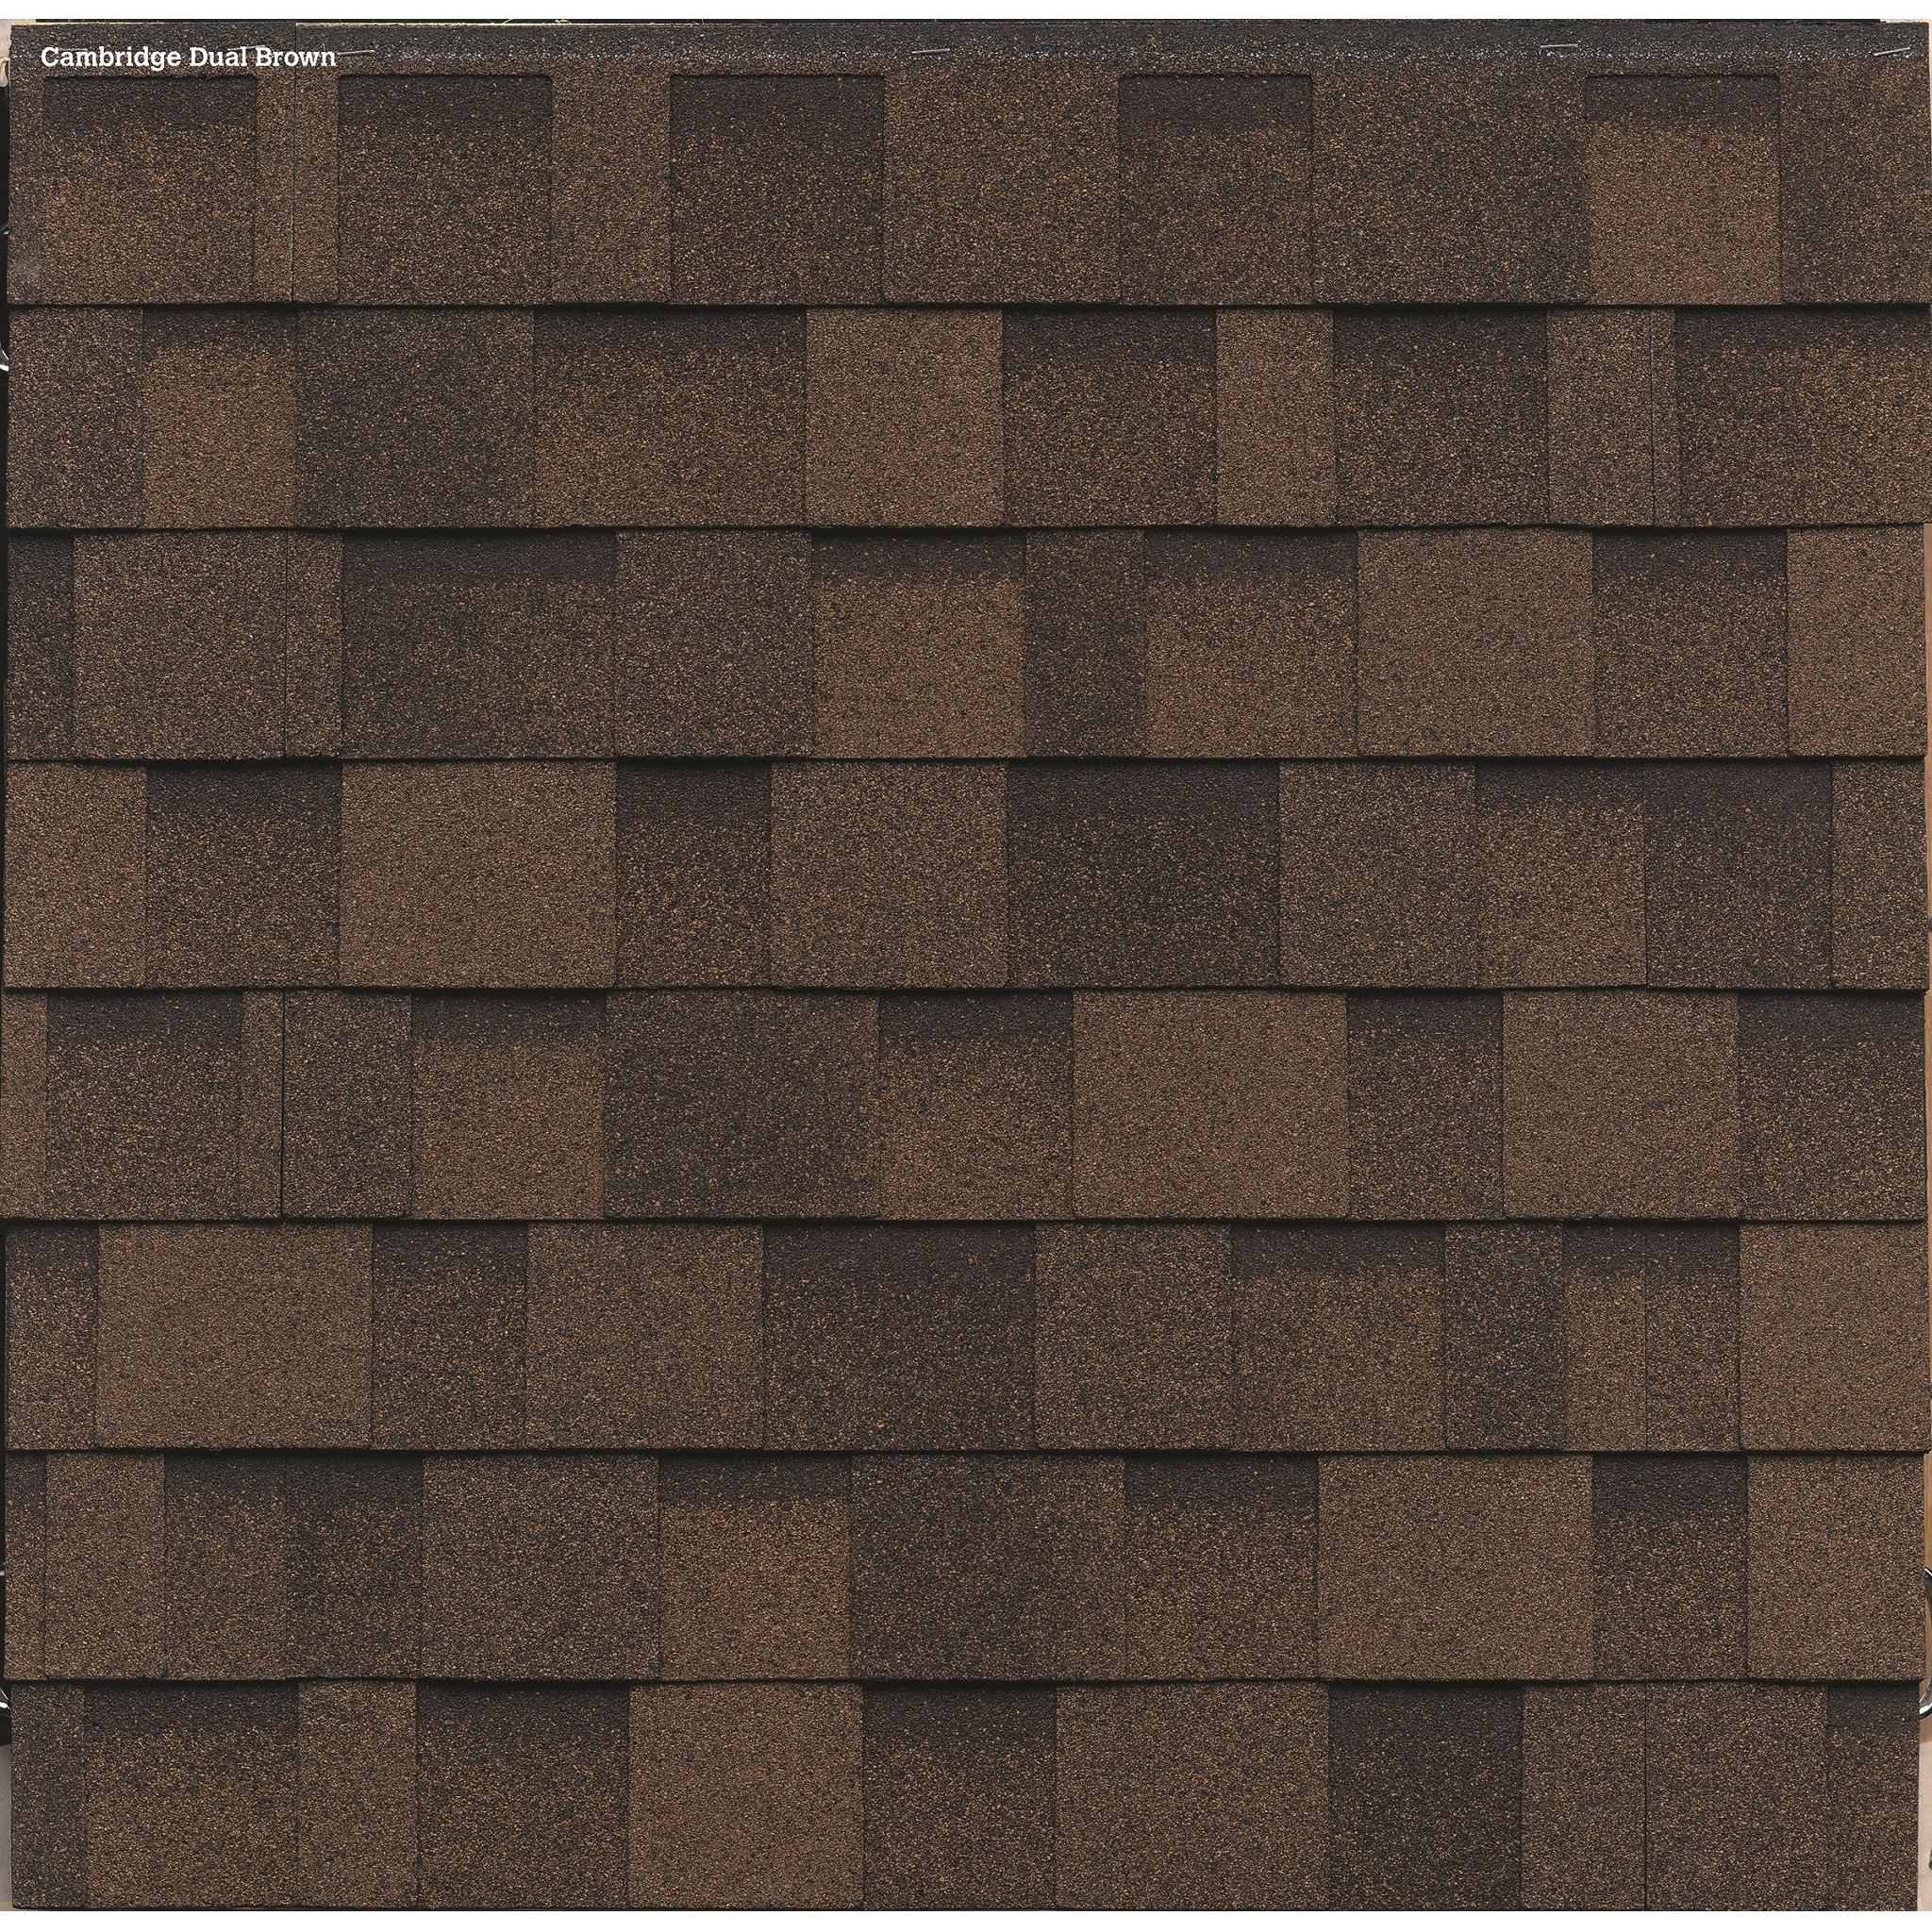 Biltmore Dual Brown Eurotech Roofing Supply